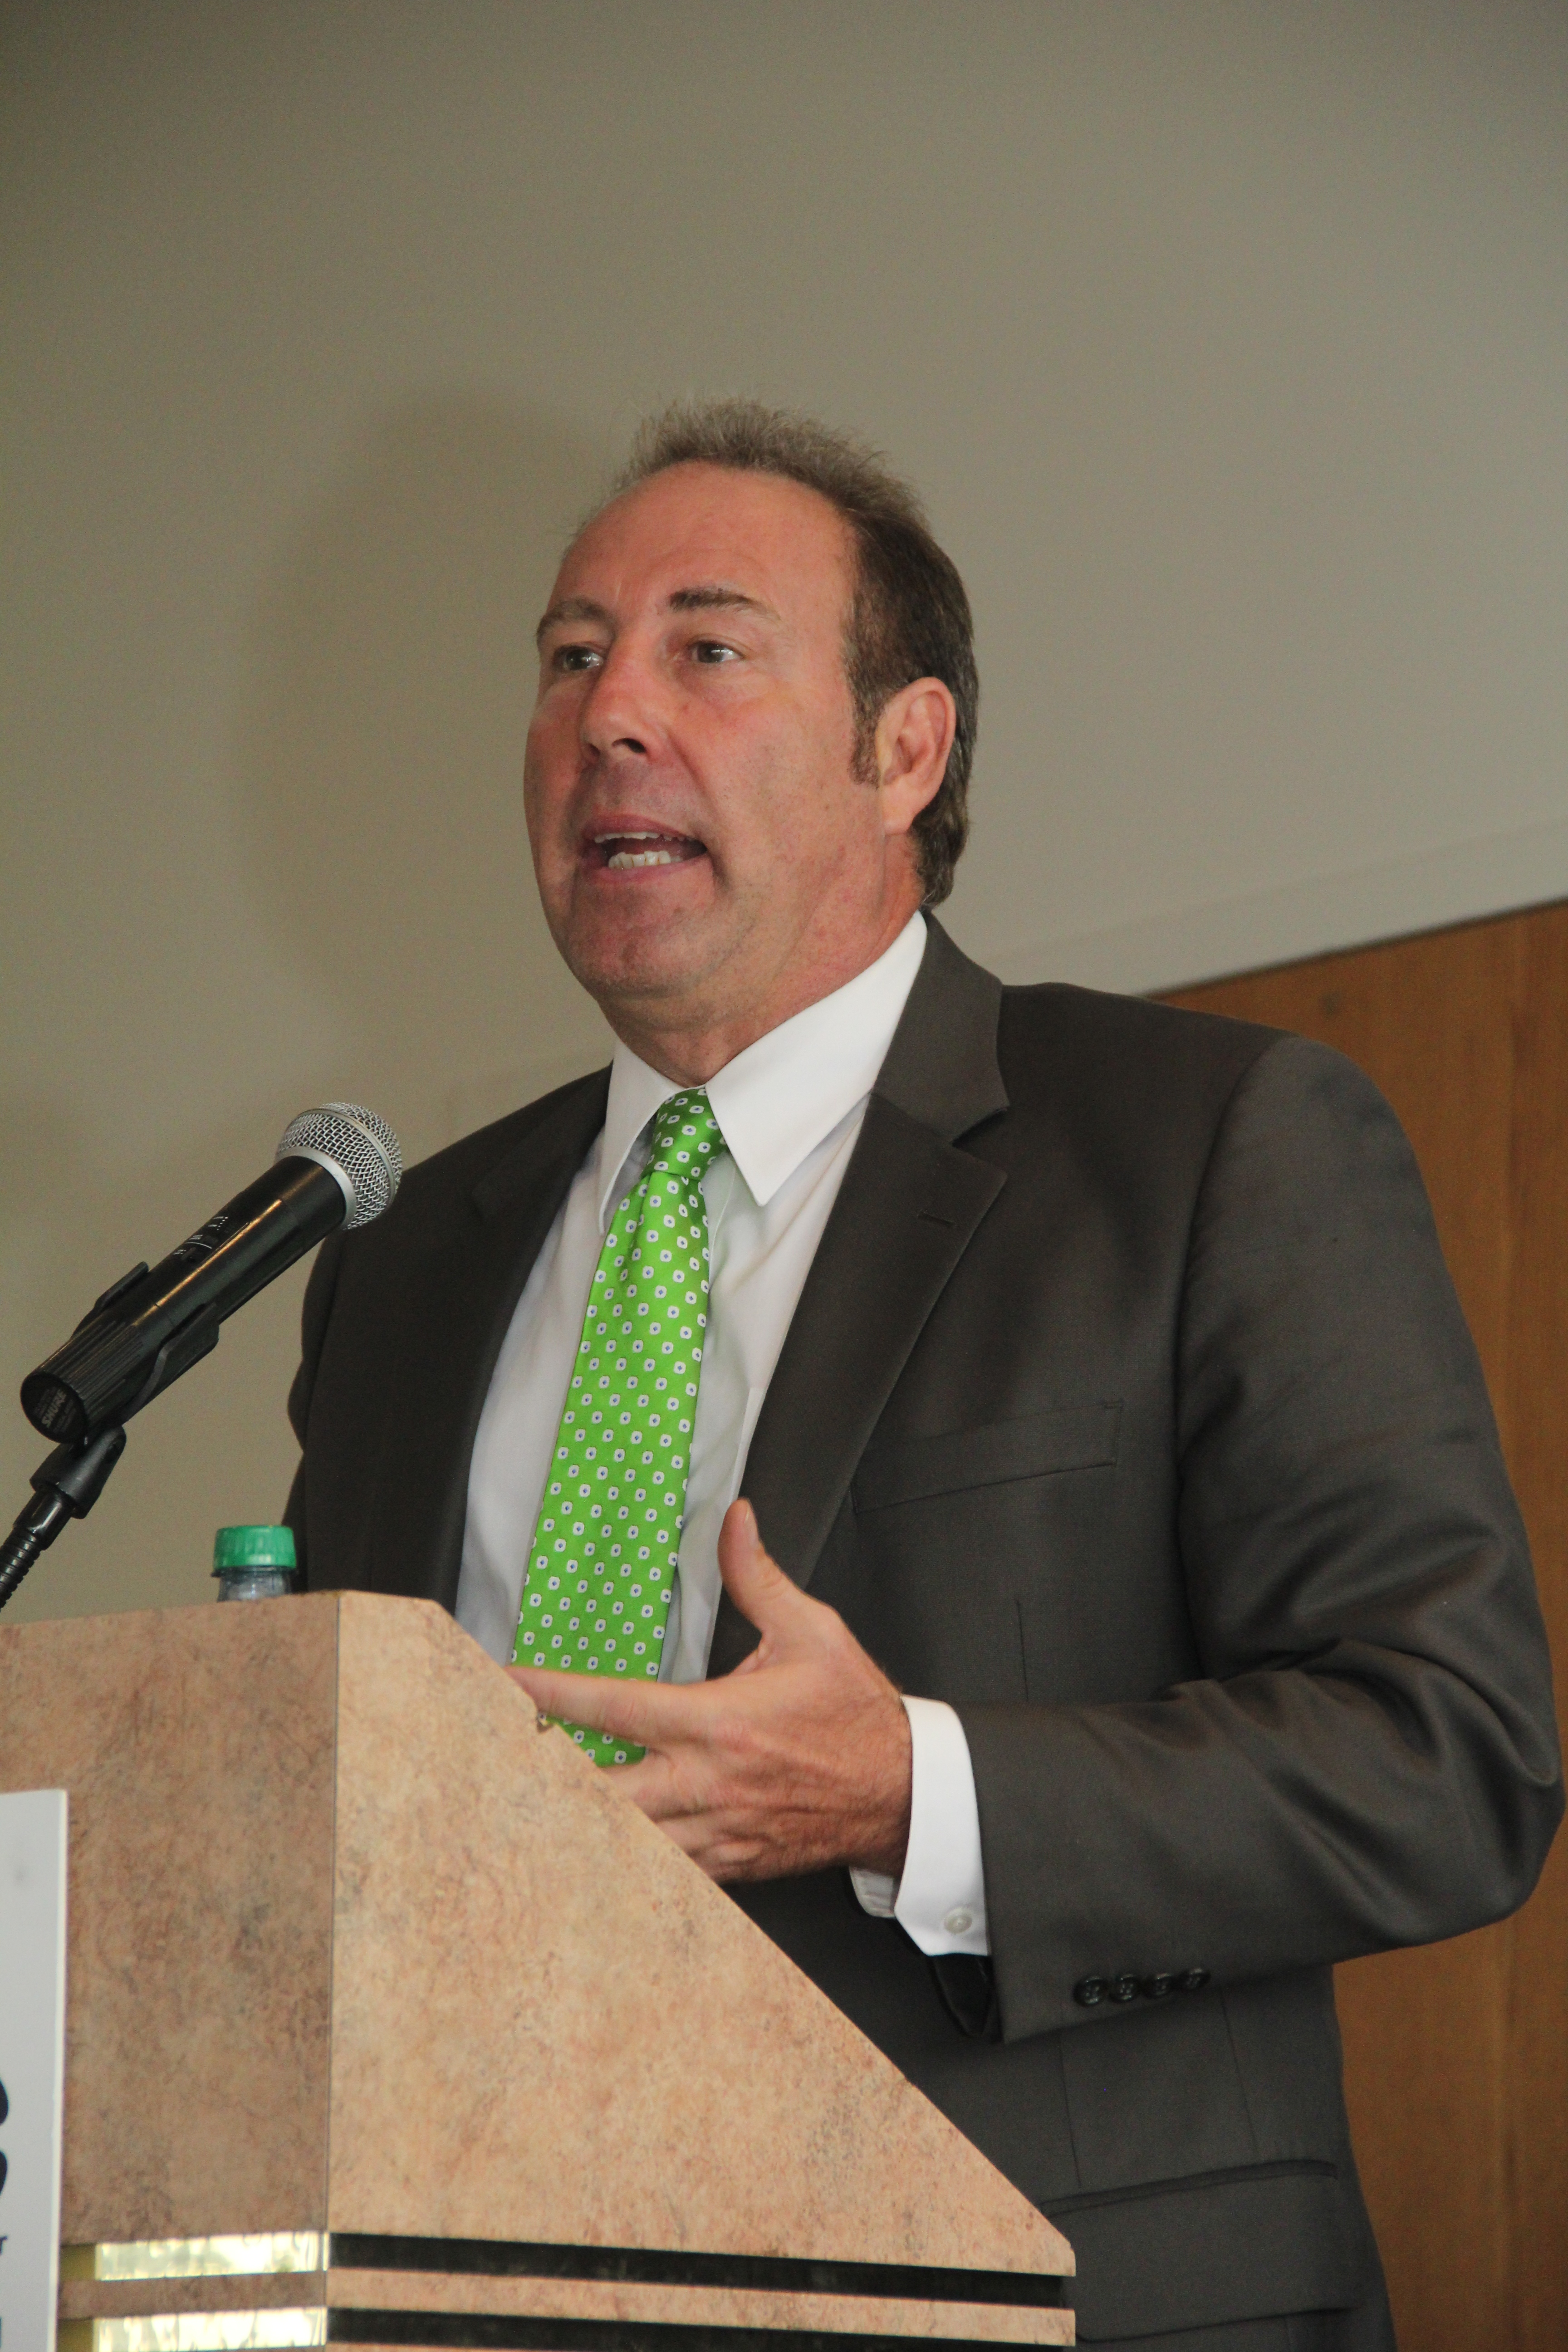 State Senator Joseph Robach speaks during the Annual Meeting